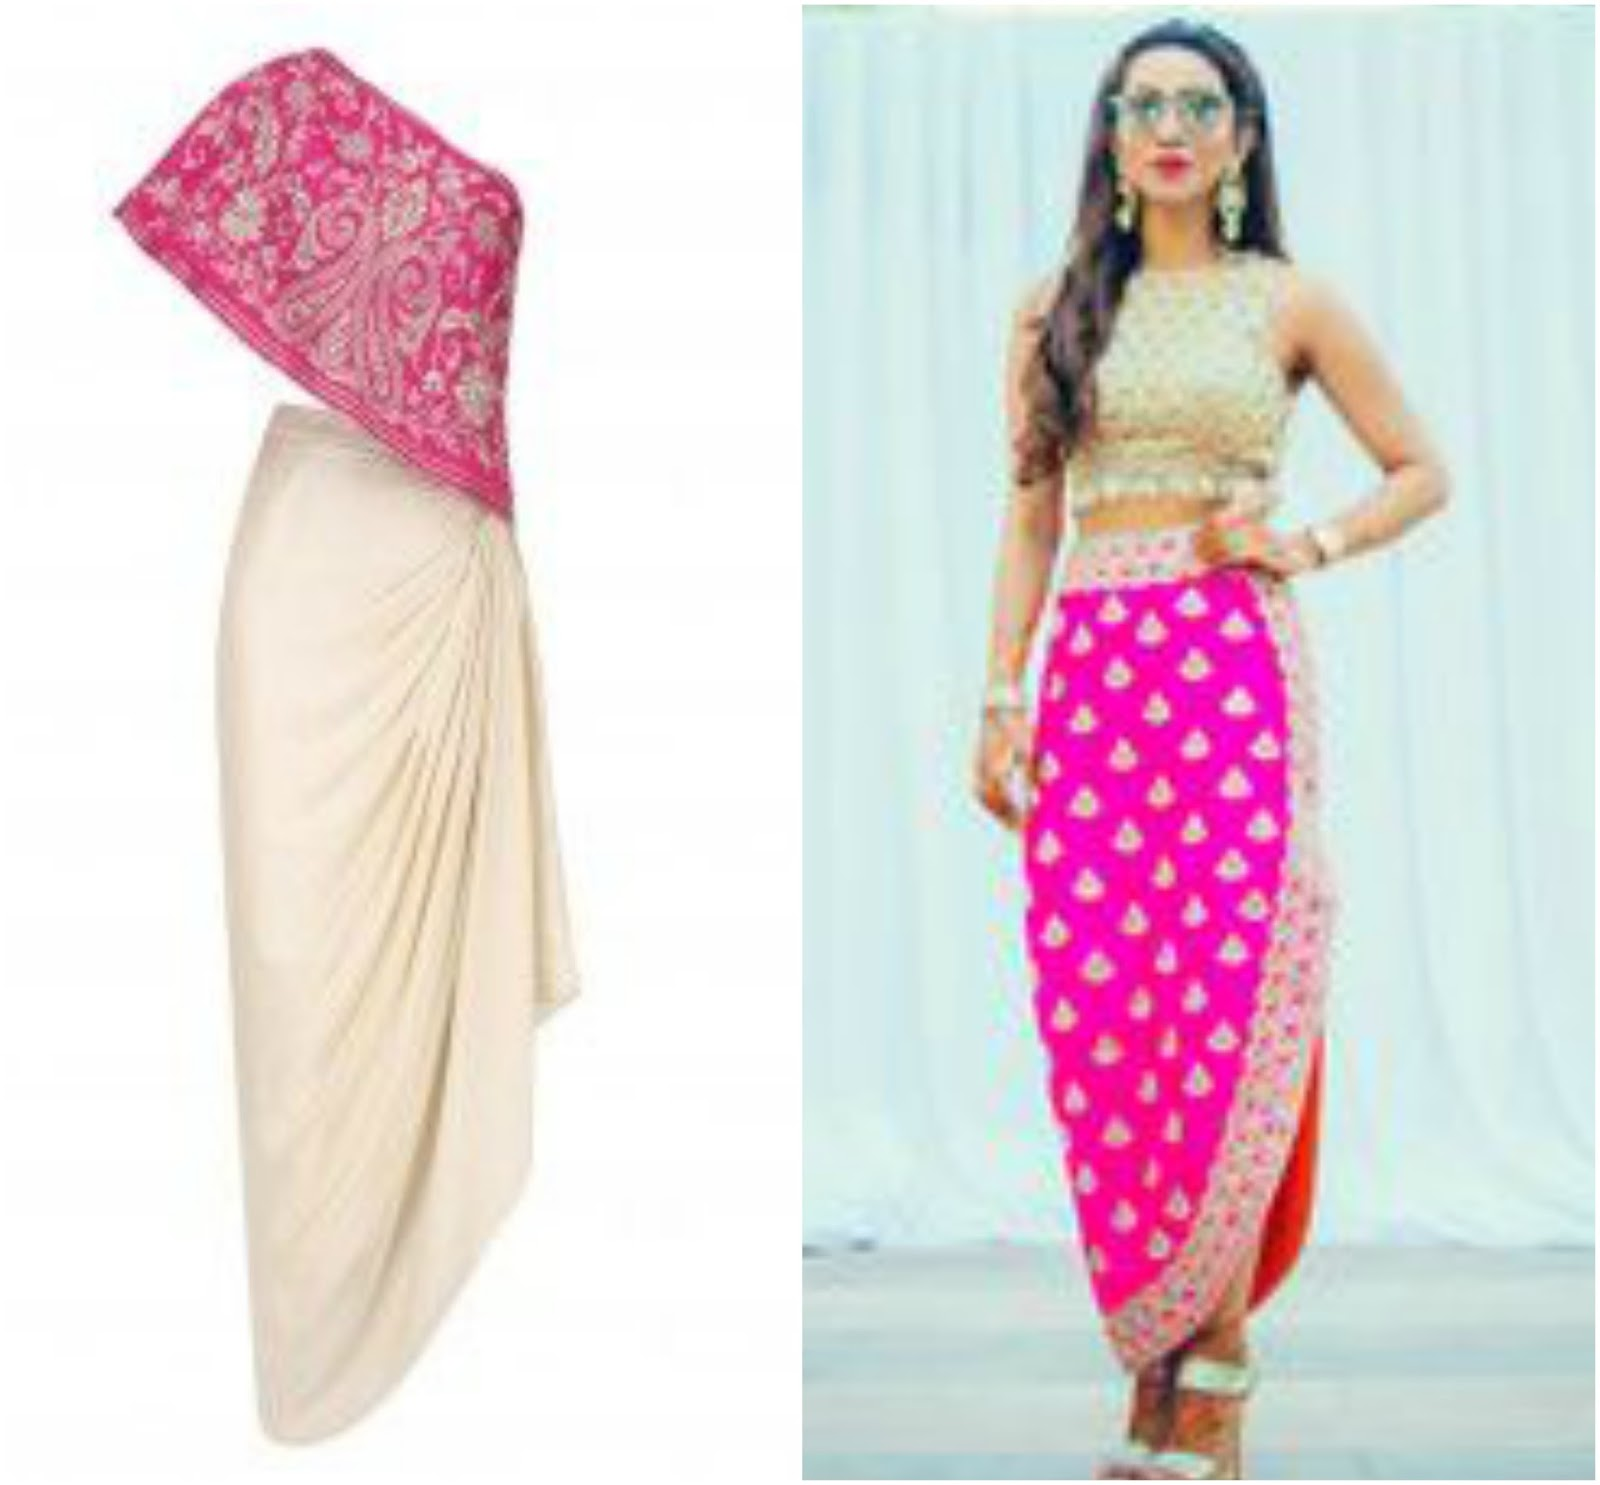 how to make dhoti pants from dupatta, 6 Ways To Reuse Your Dupatta, dhoti botttom from dupatta, make dhoti from old dupatta, how to restyle dupatta for outfits